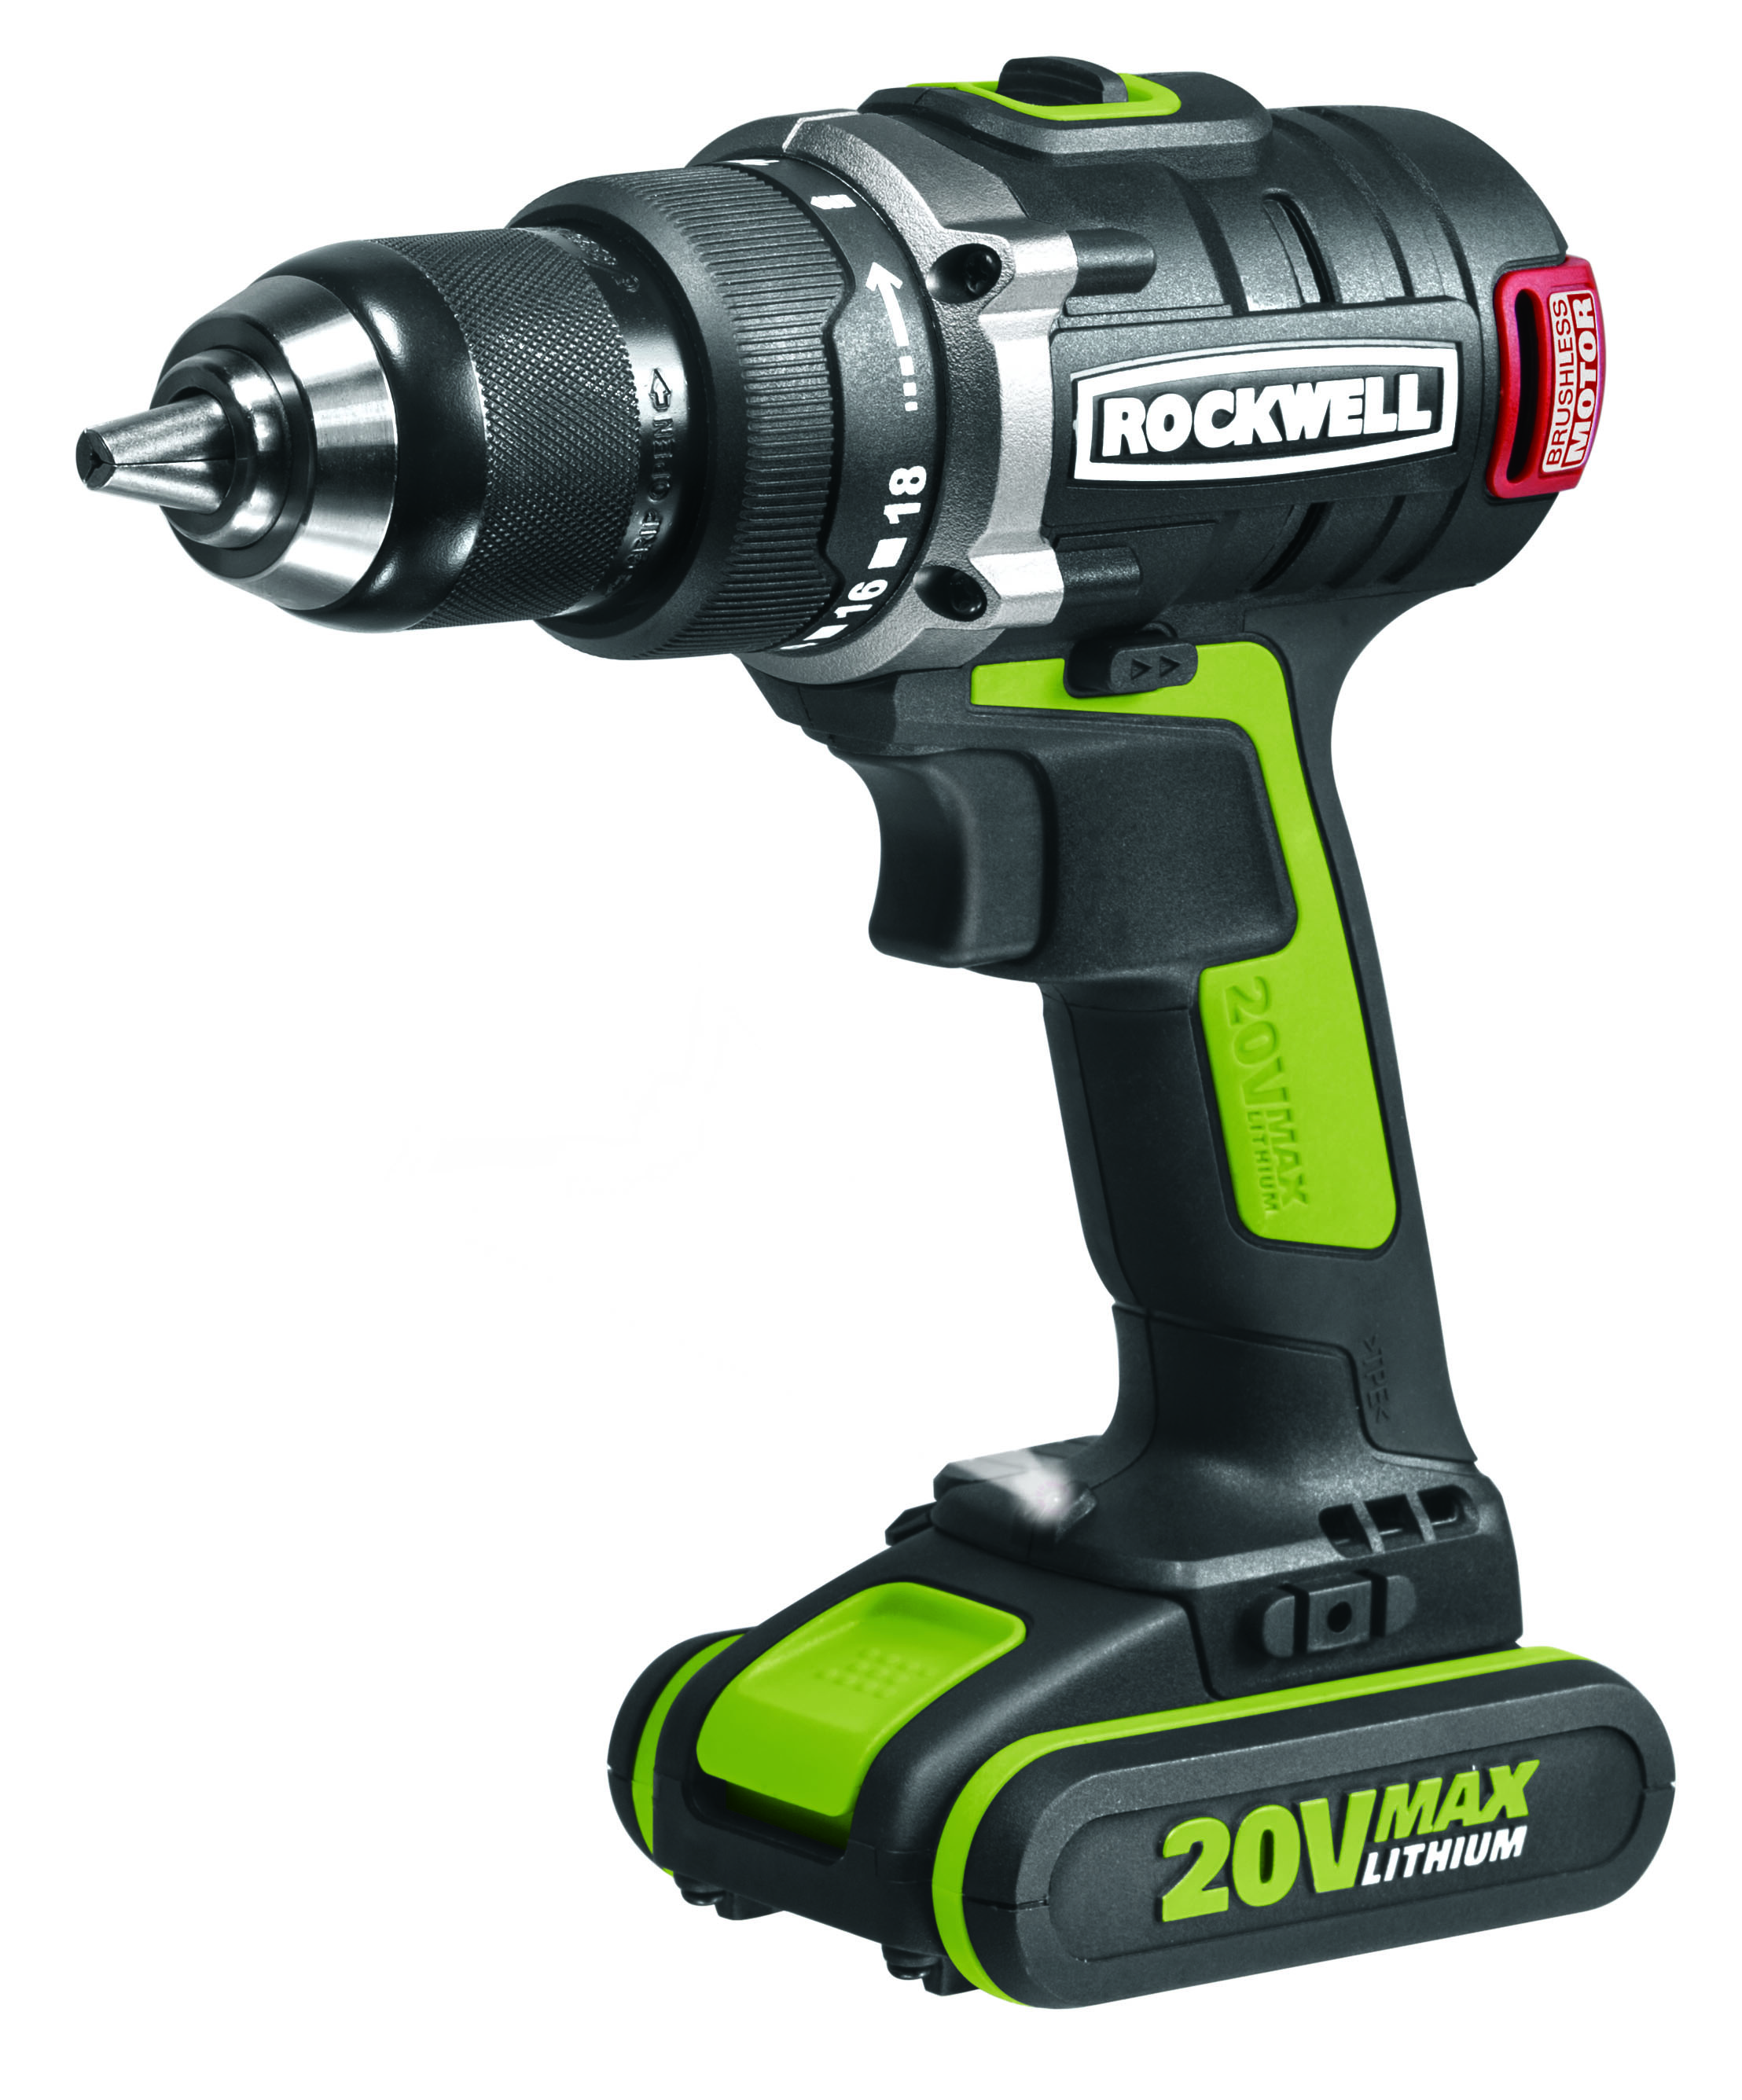 Rockwell S New Dynamic 20 Volt Brushless Drill Driver Includes 10 Year Motor Warranty